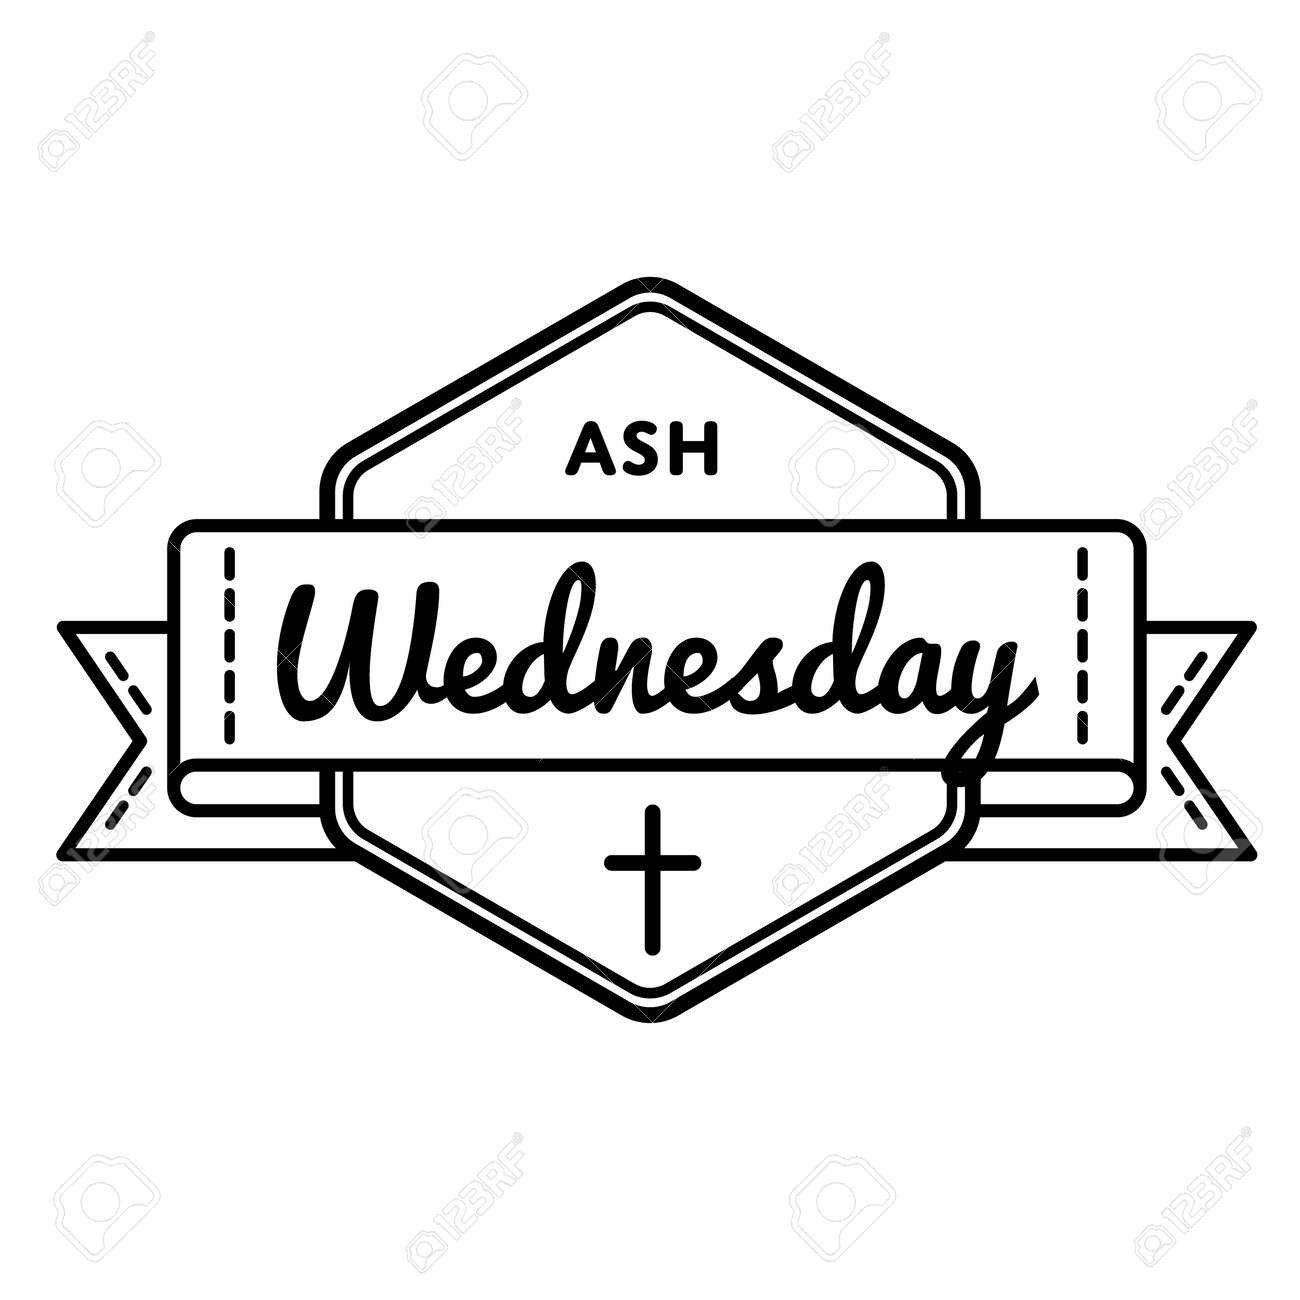 ash wednesday cards